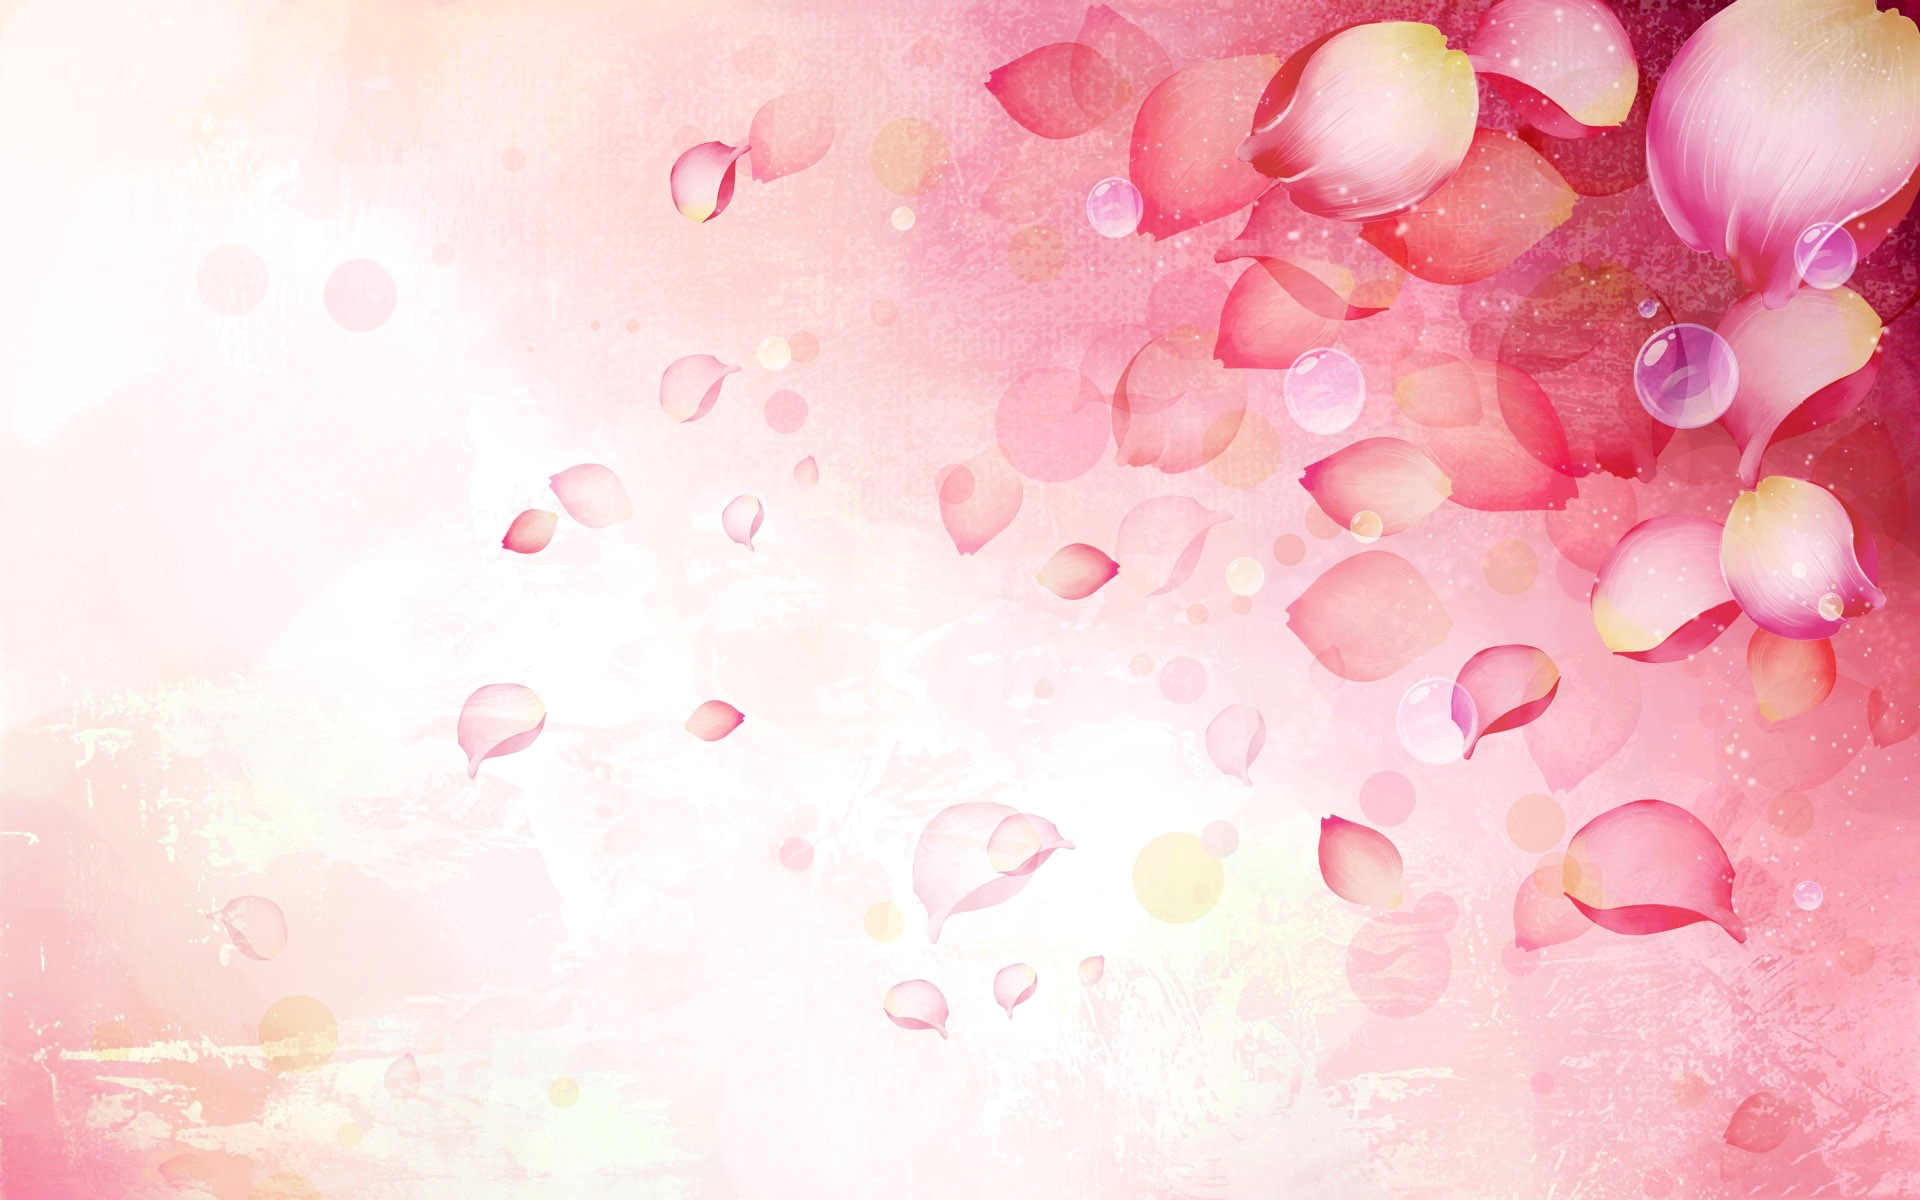 background terima kasih gif 14 gif images download.download, Powerpoint templates